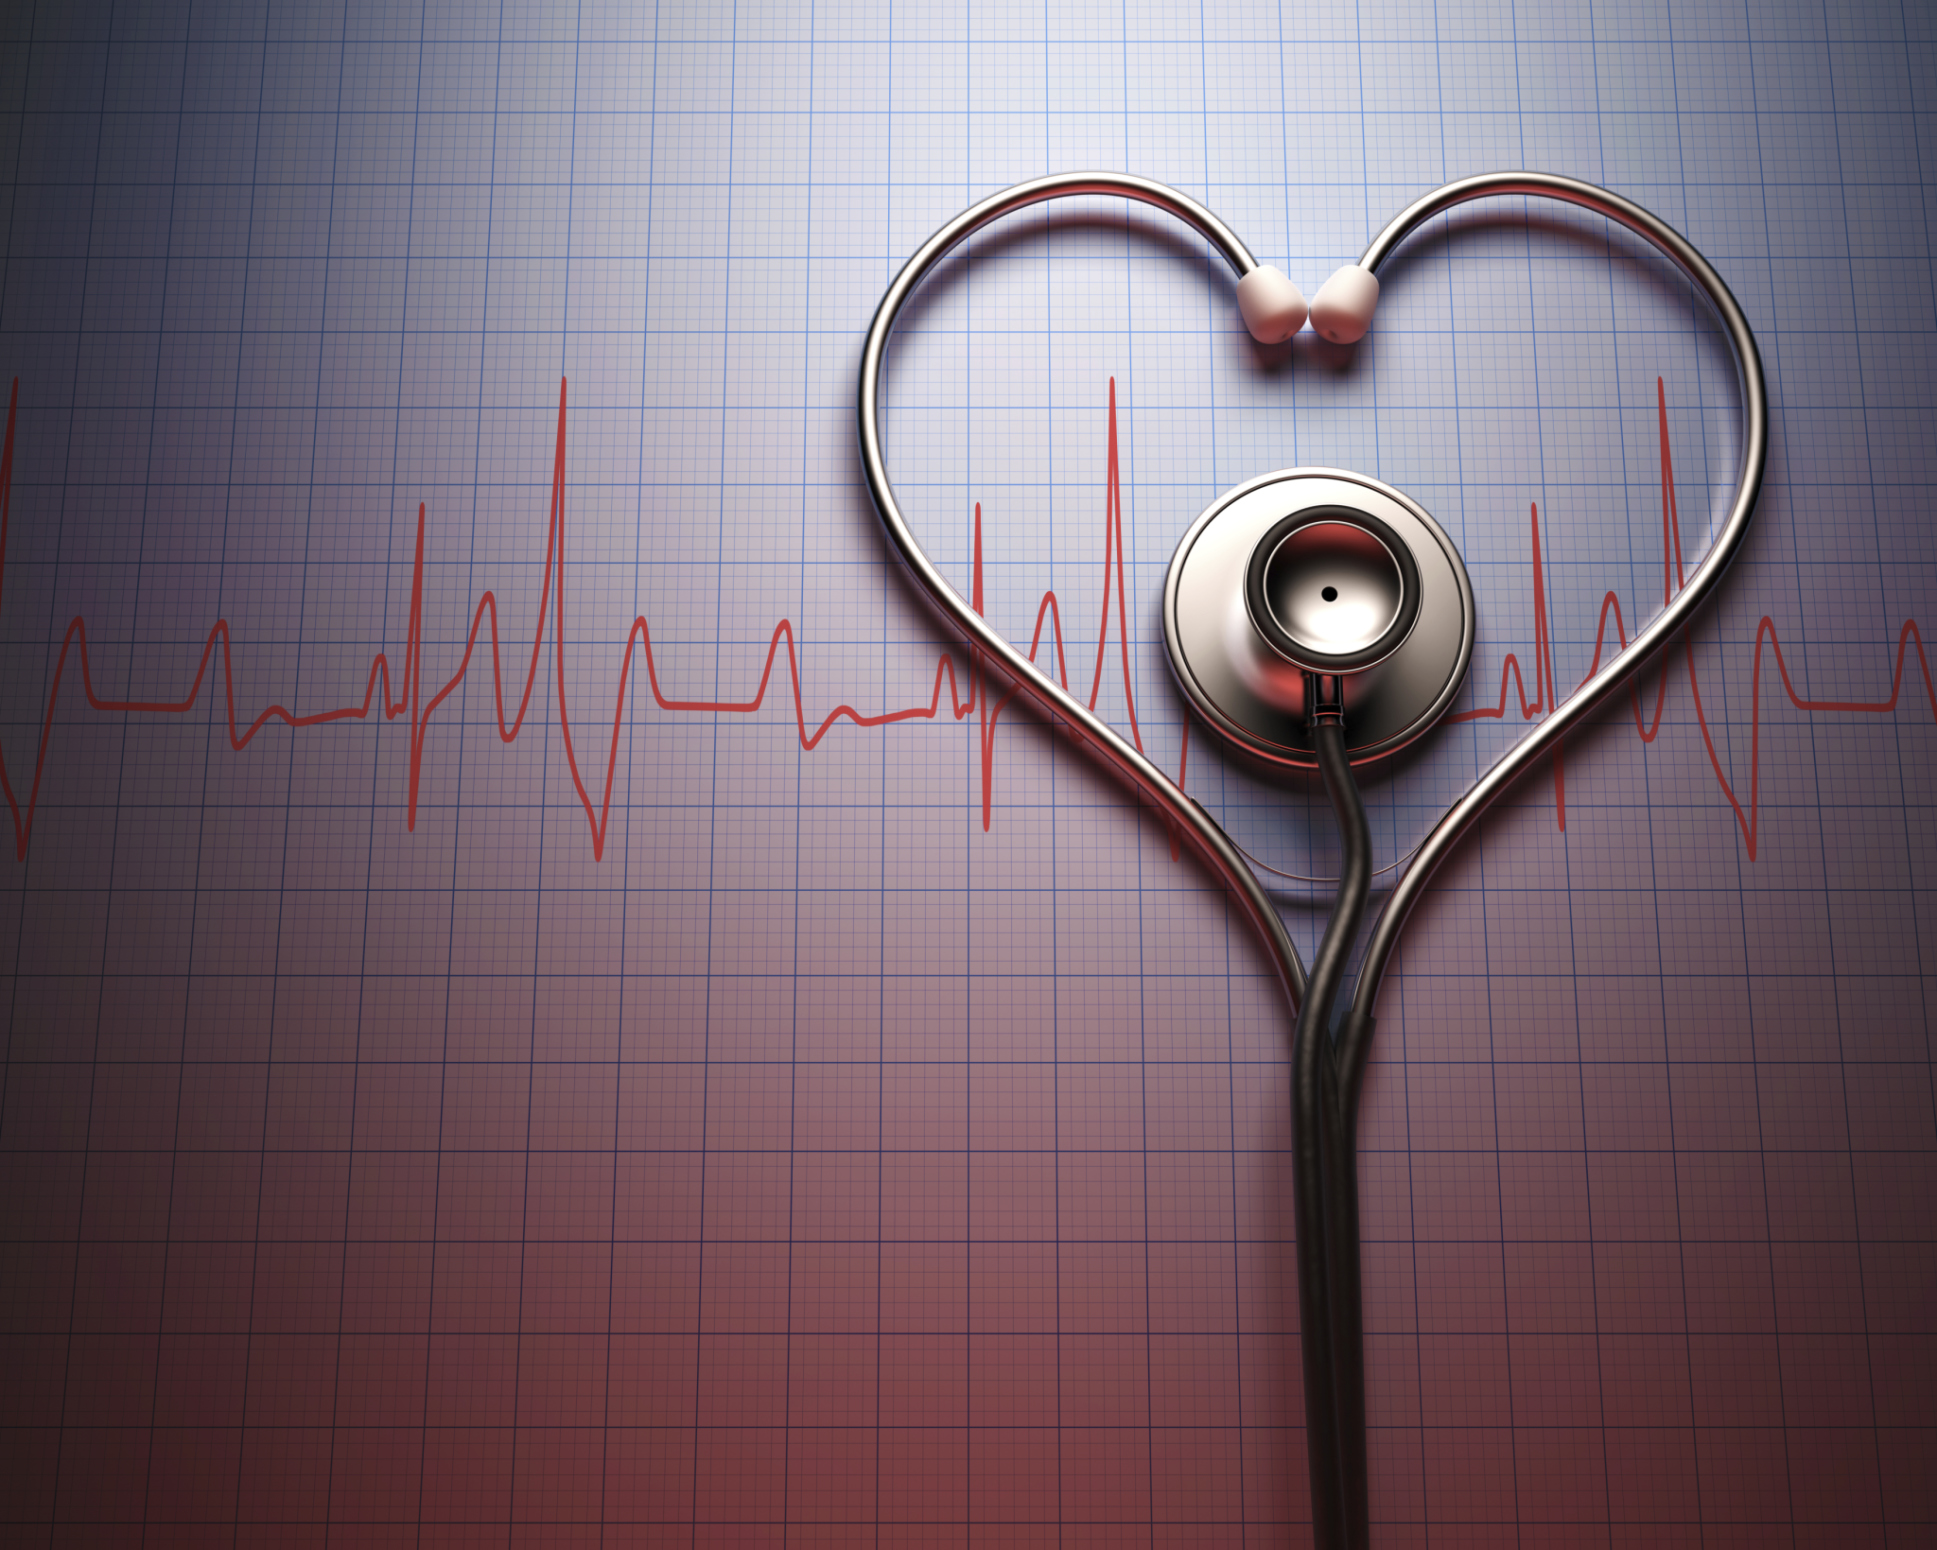 Doctors rethink care with depression, heart link connection